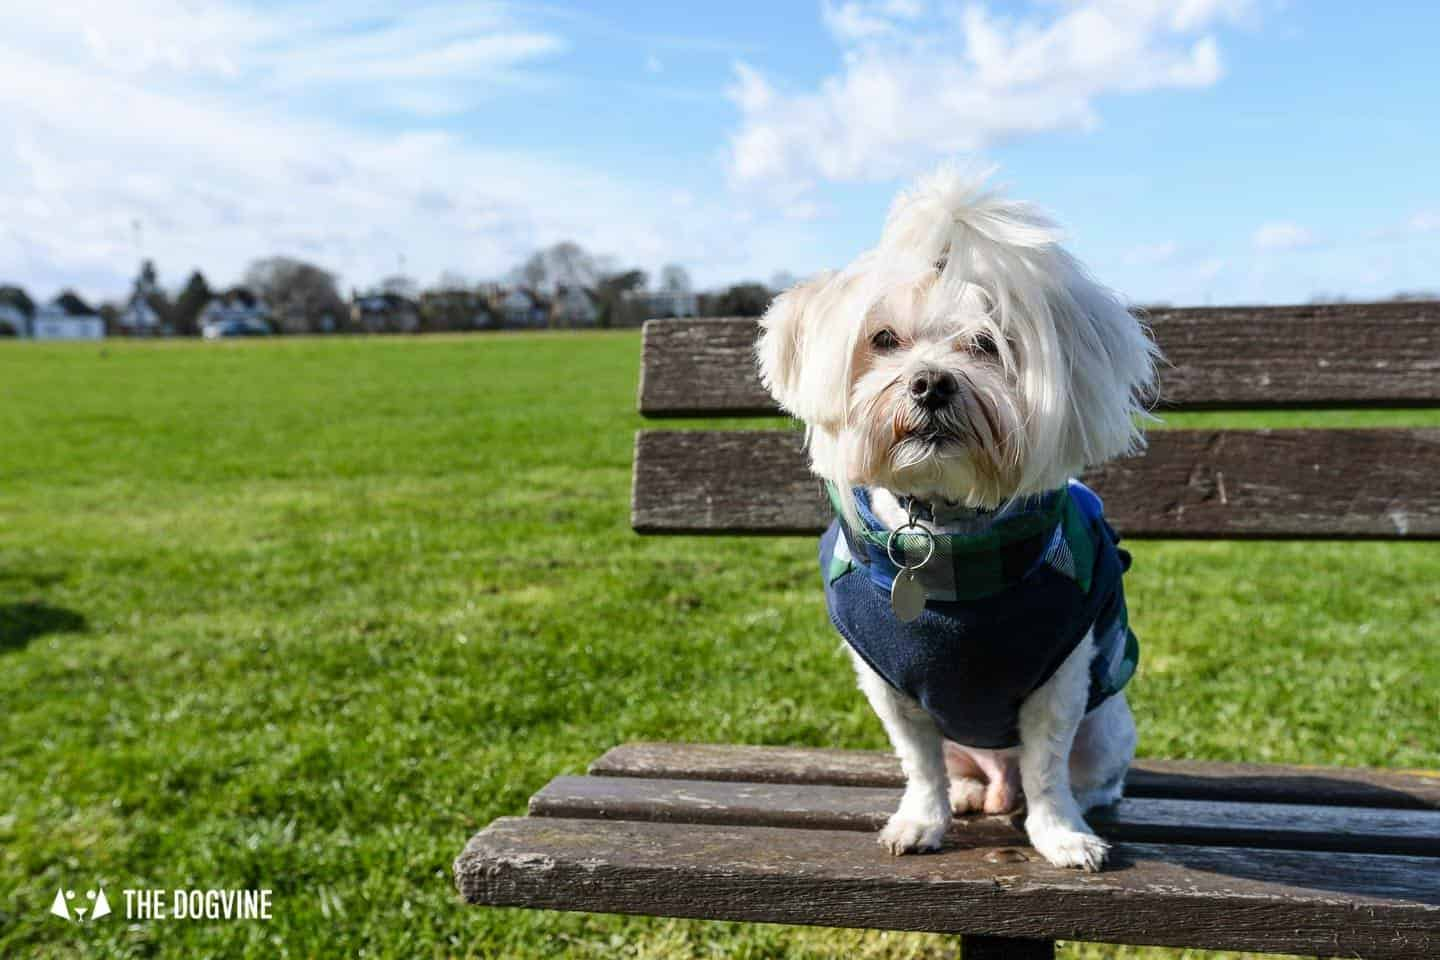 The Best of Dog-friendly St Johns by Milo the Maltese - Blackheath Common